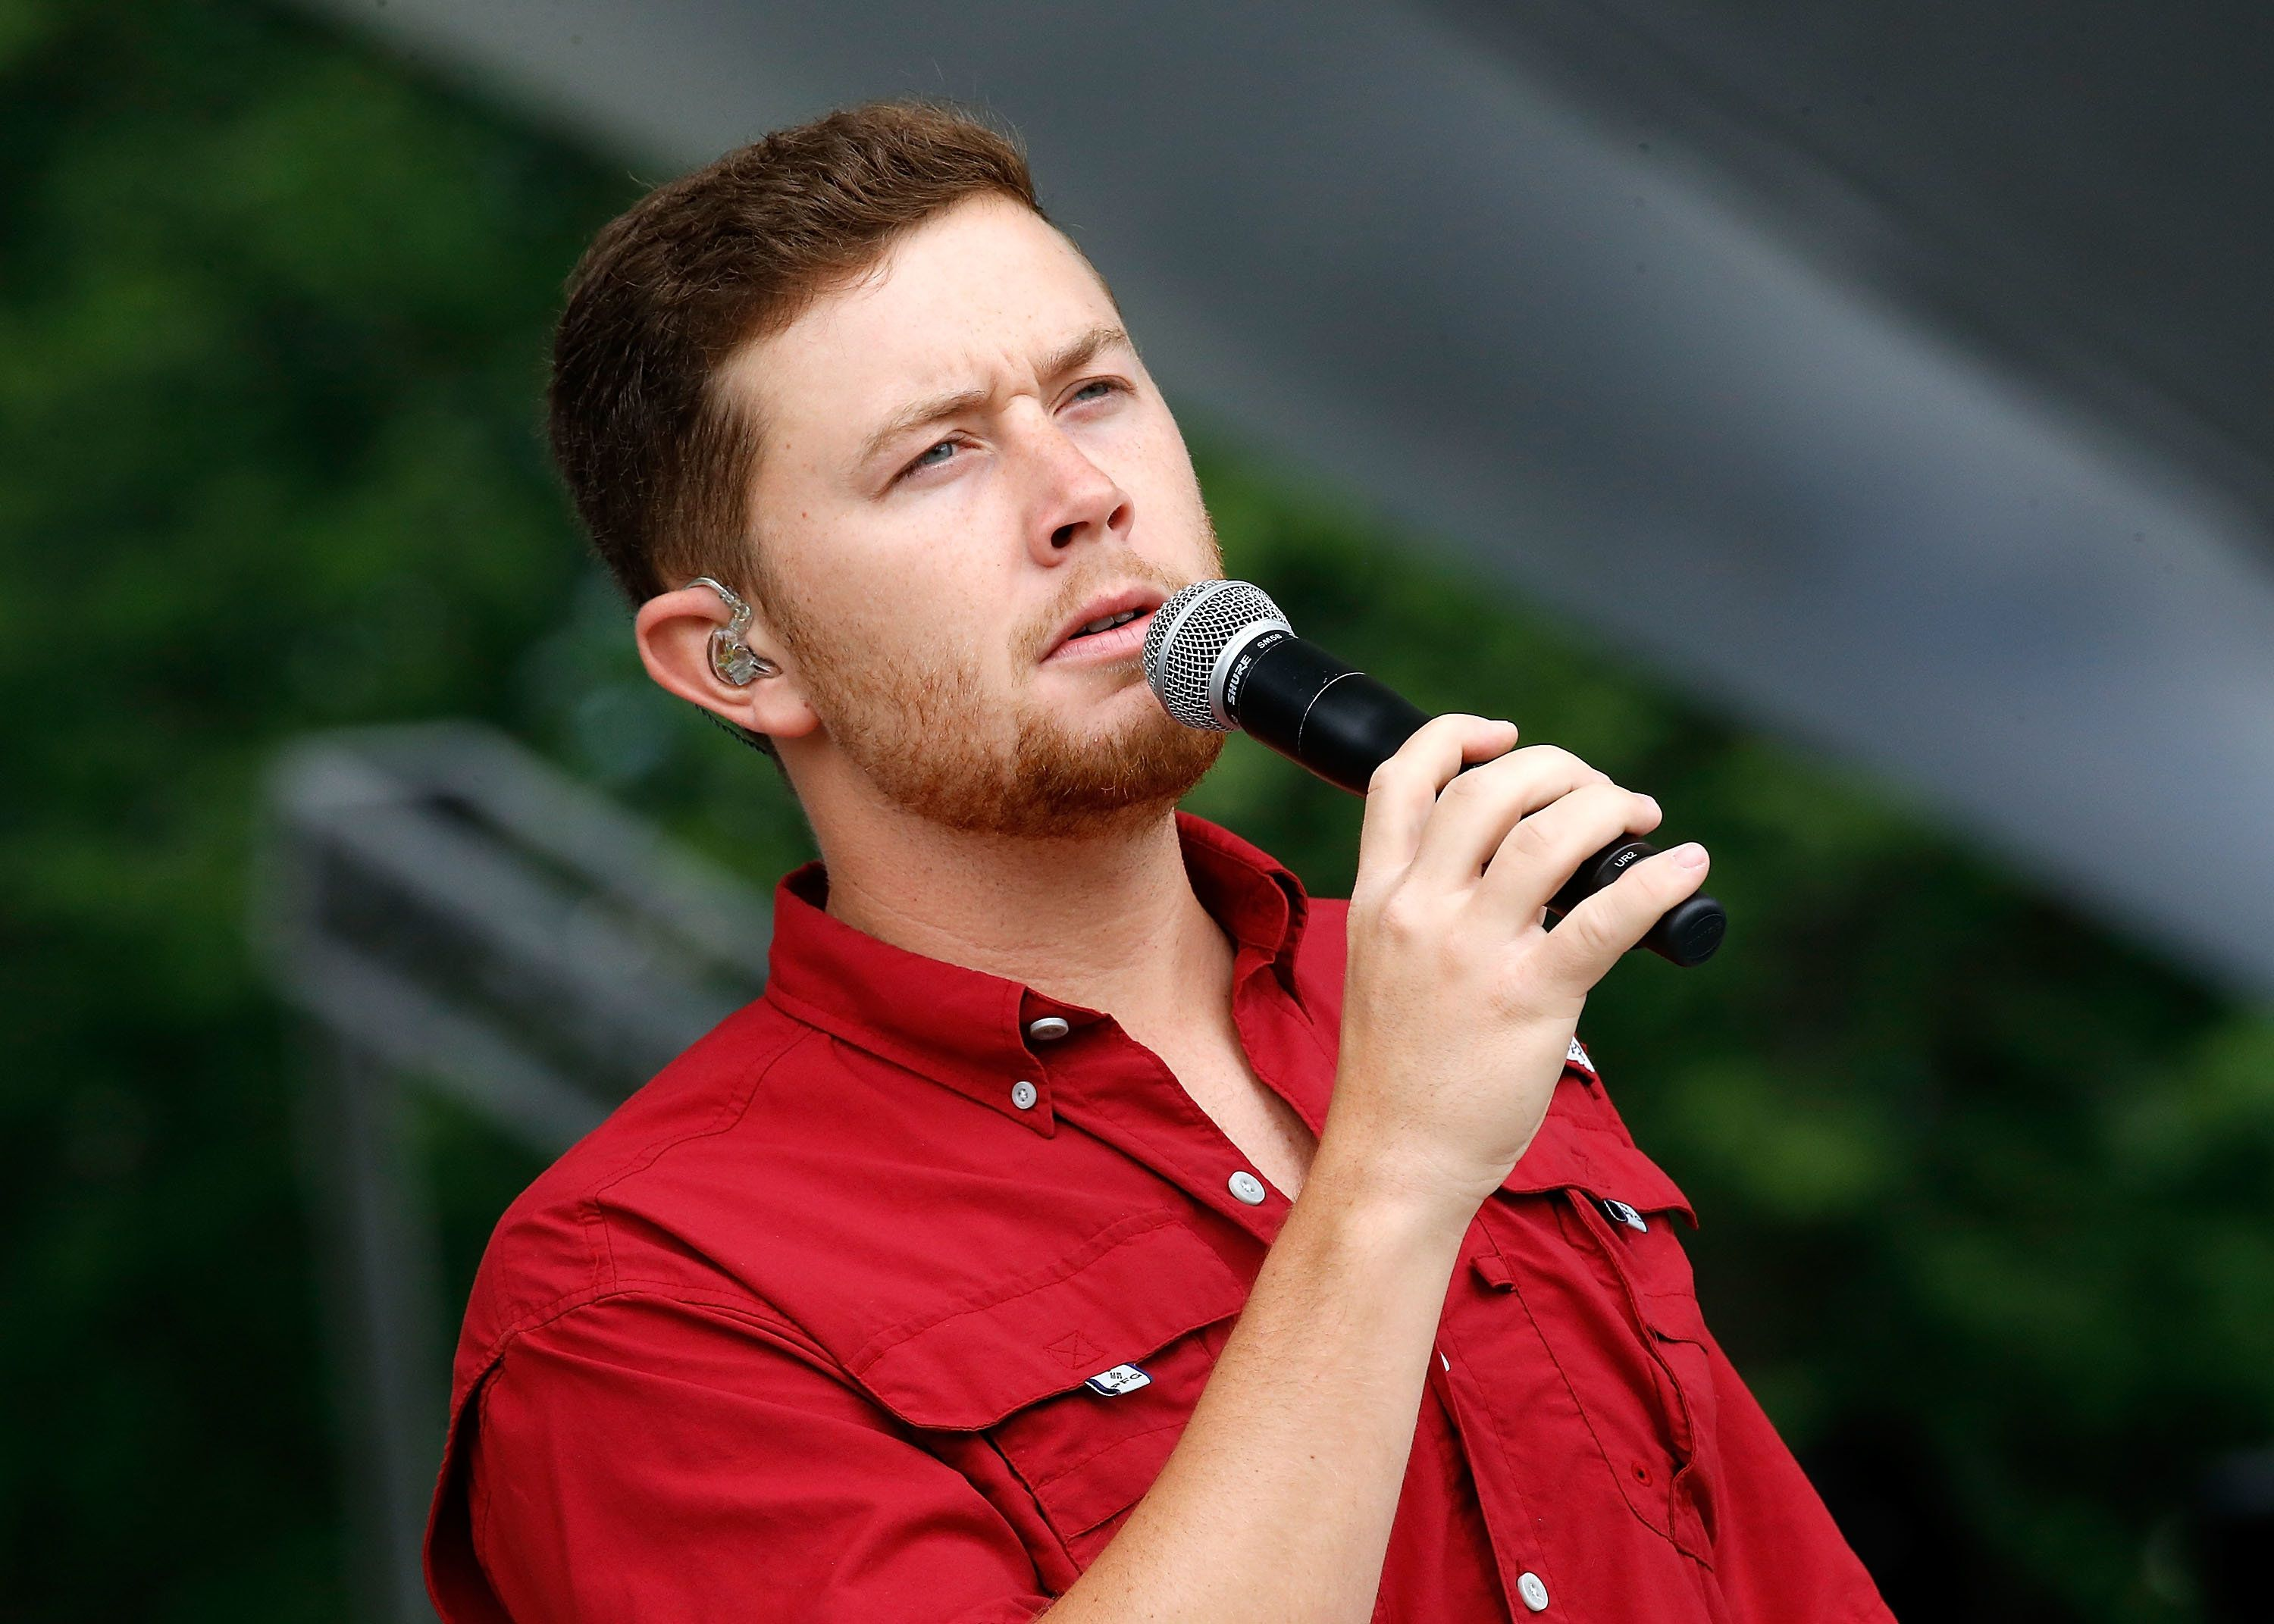 WASHINGTON, DC - MAY 27:  Country music artist Scotty McCreery rehearses for PBS' 2017 National Memorial Day Concert - Rehearsals at U.S. Capitol, West Lawn on May 27, 2017 in Washington, DC.  (Photo by Paul Morigi/Getty Images for Capital Concerts)